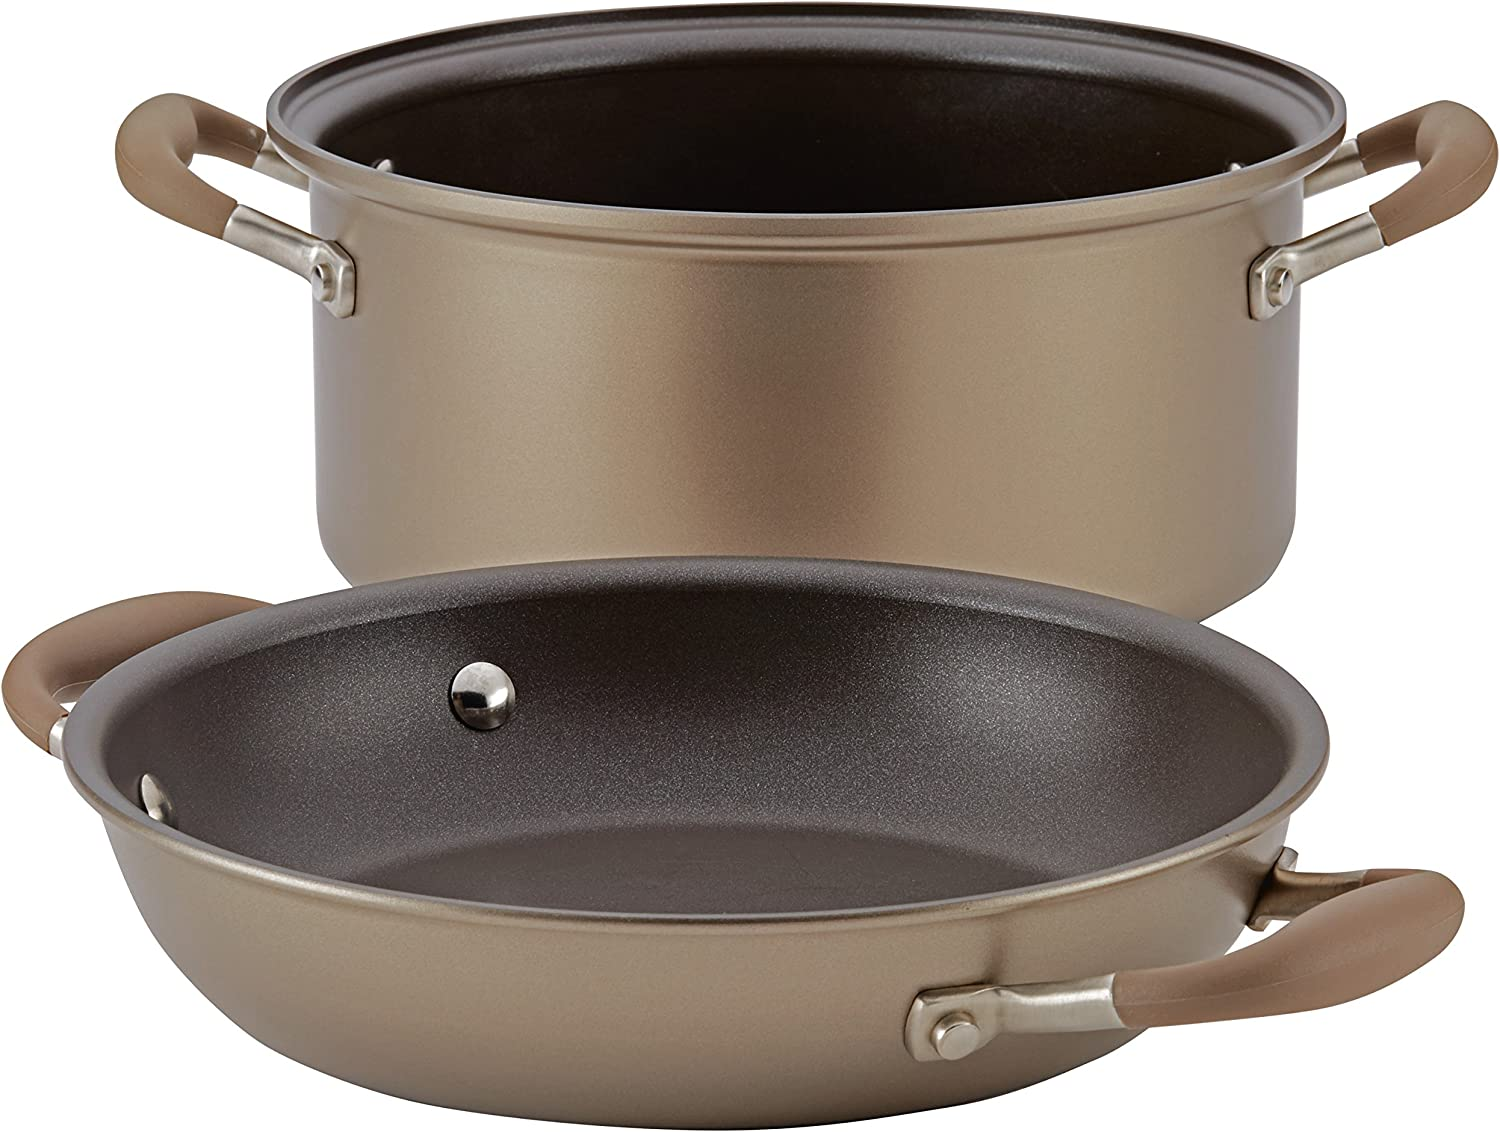 Anolon Advanced 2-in-1 Nonstick 5-Quart Dutch Oven With Everything Pan Lid, 11-Inch, Bronze